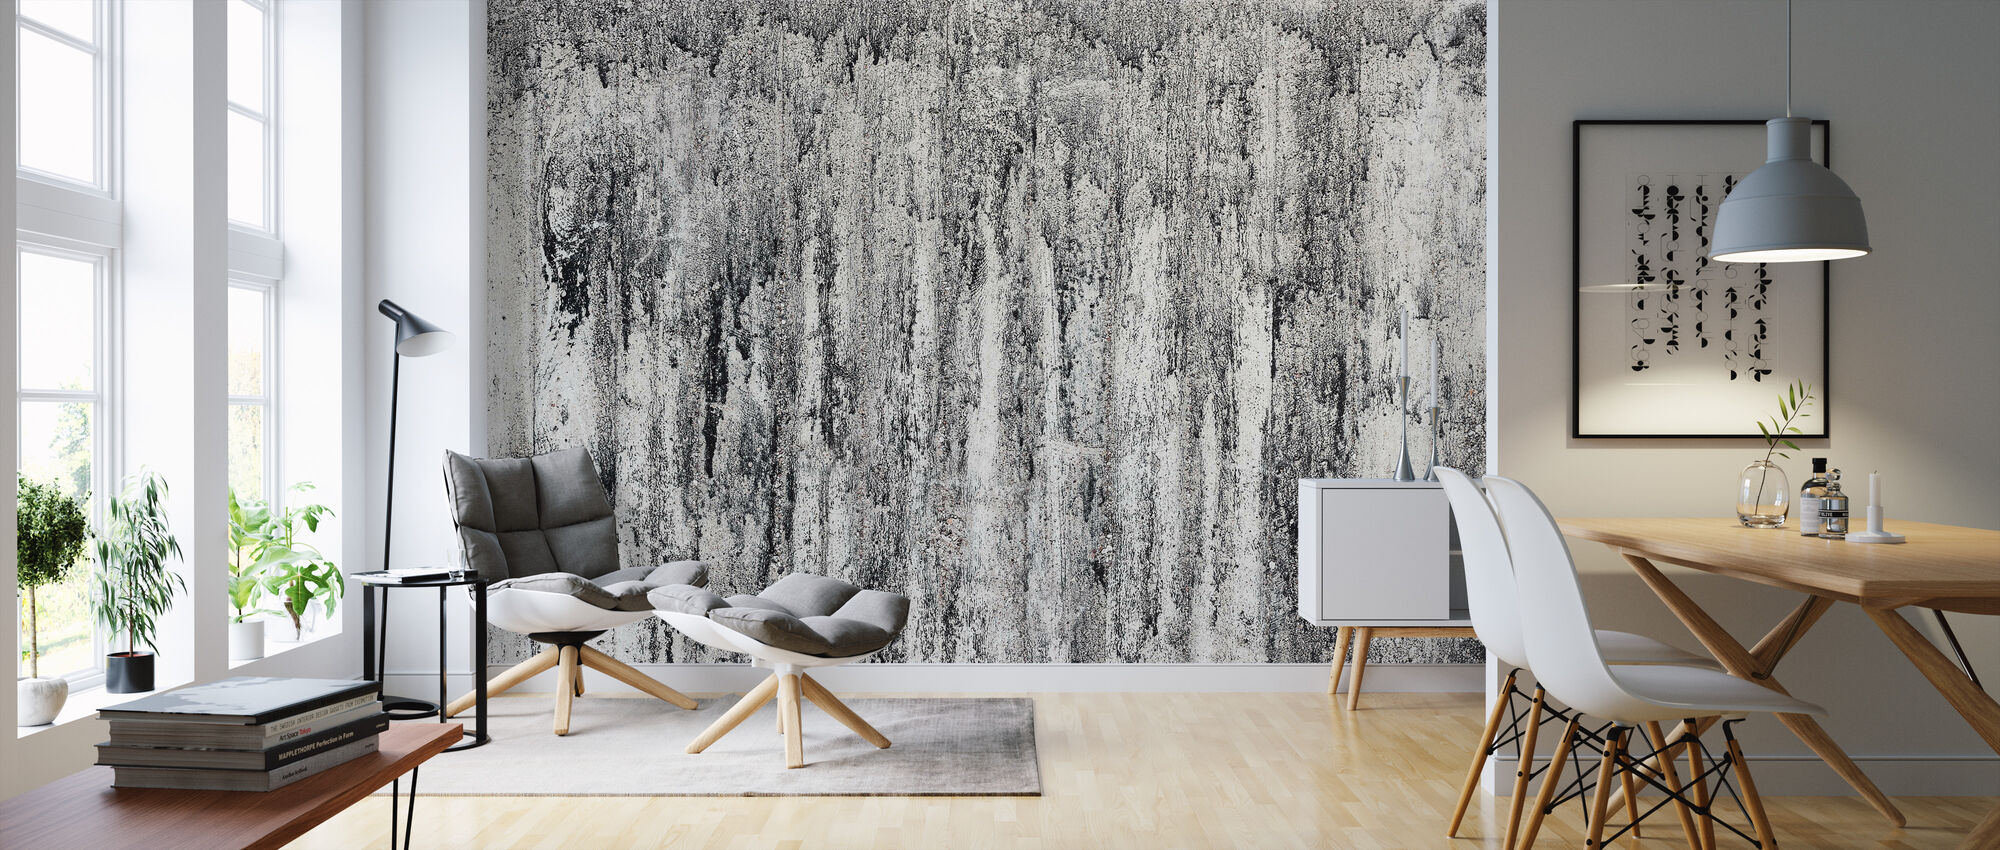 Cement Wall - Wallpaper - Living Room